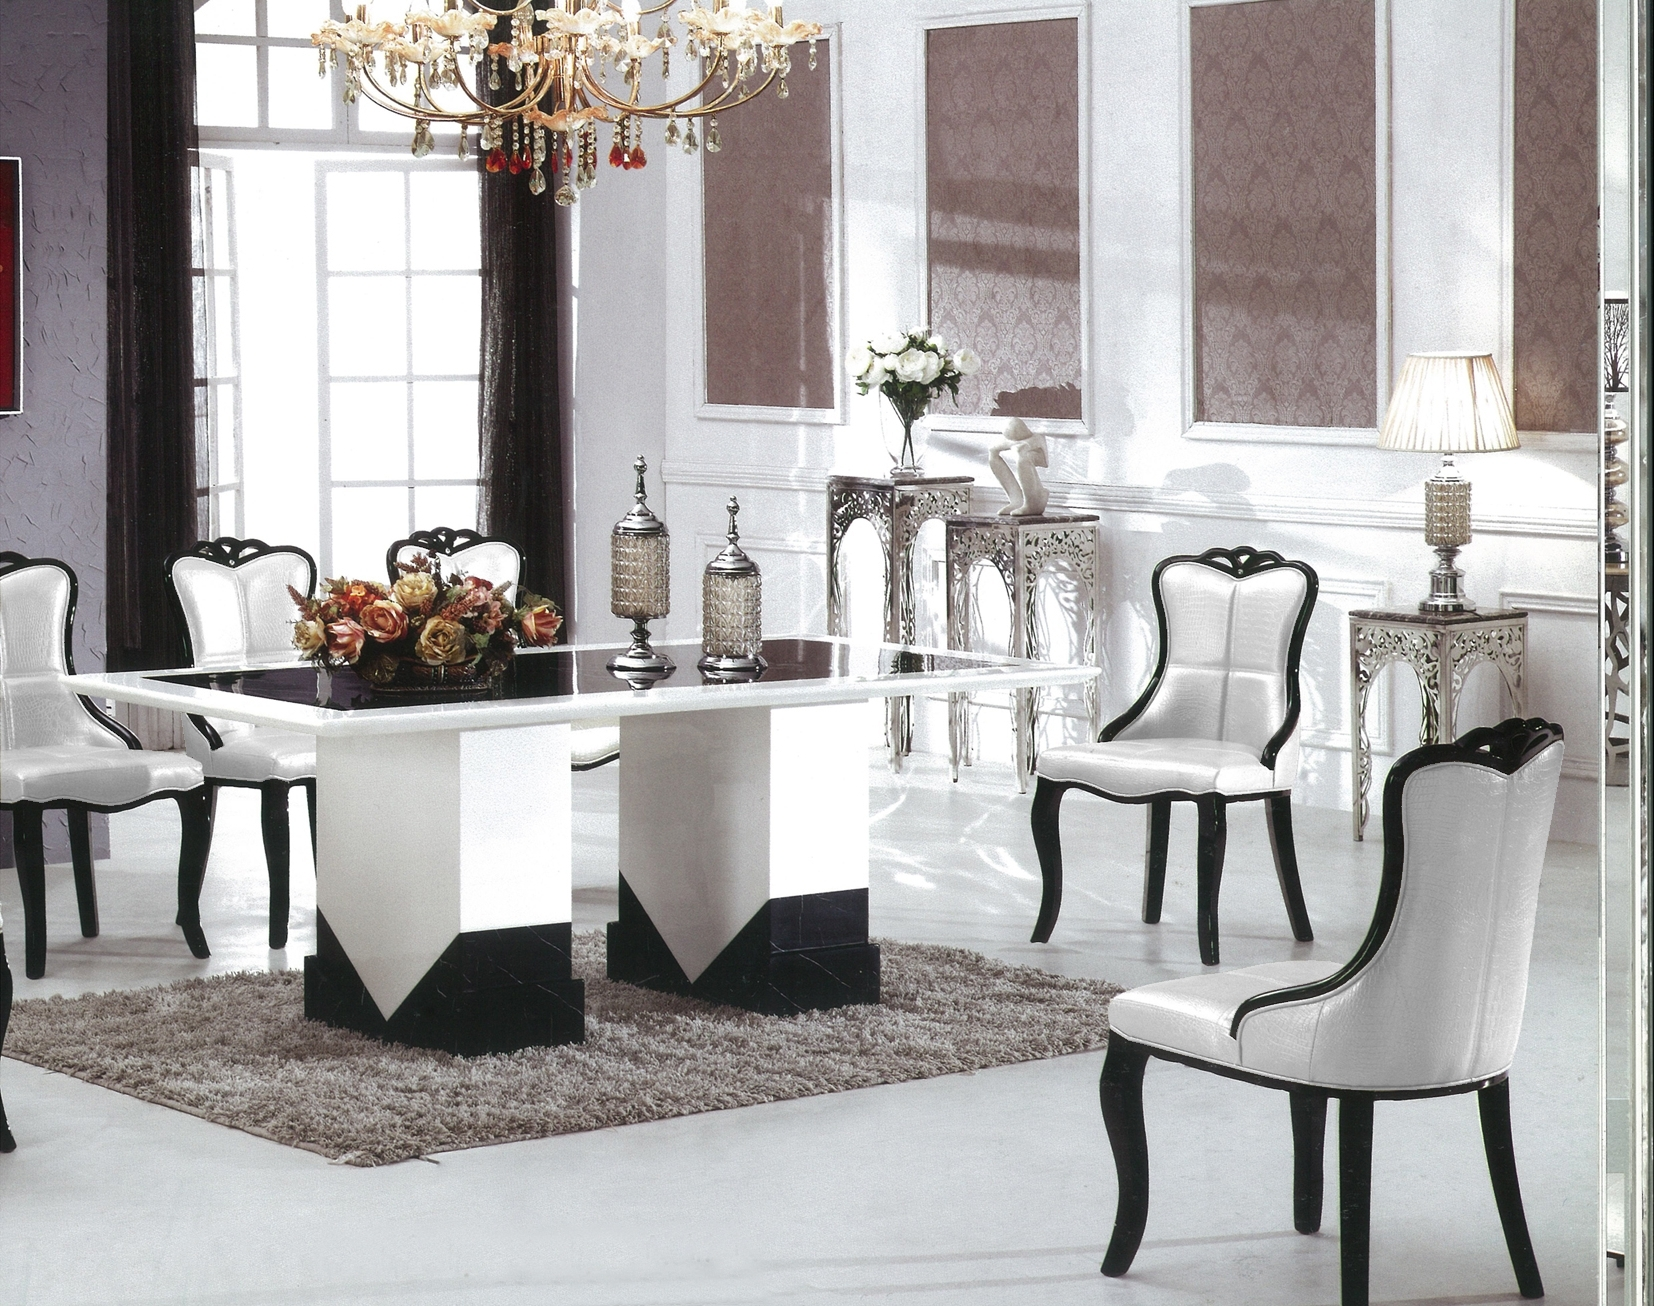 Preferred Black 8 Seater Dining Tables With Regard To Barcelona Marble Dining Table With 8 Chairs (View 20 of 25)